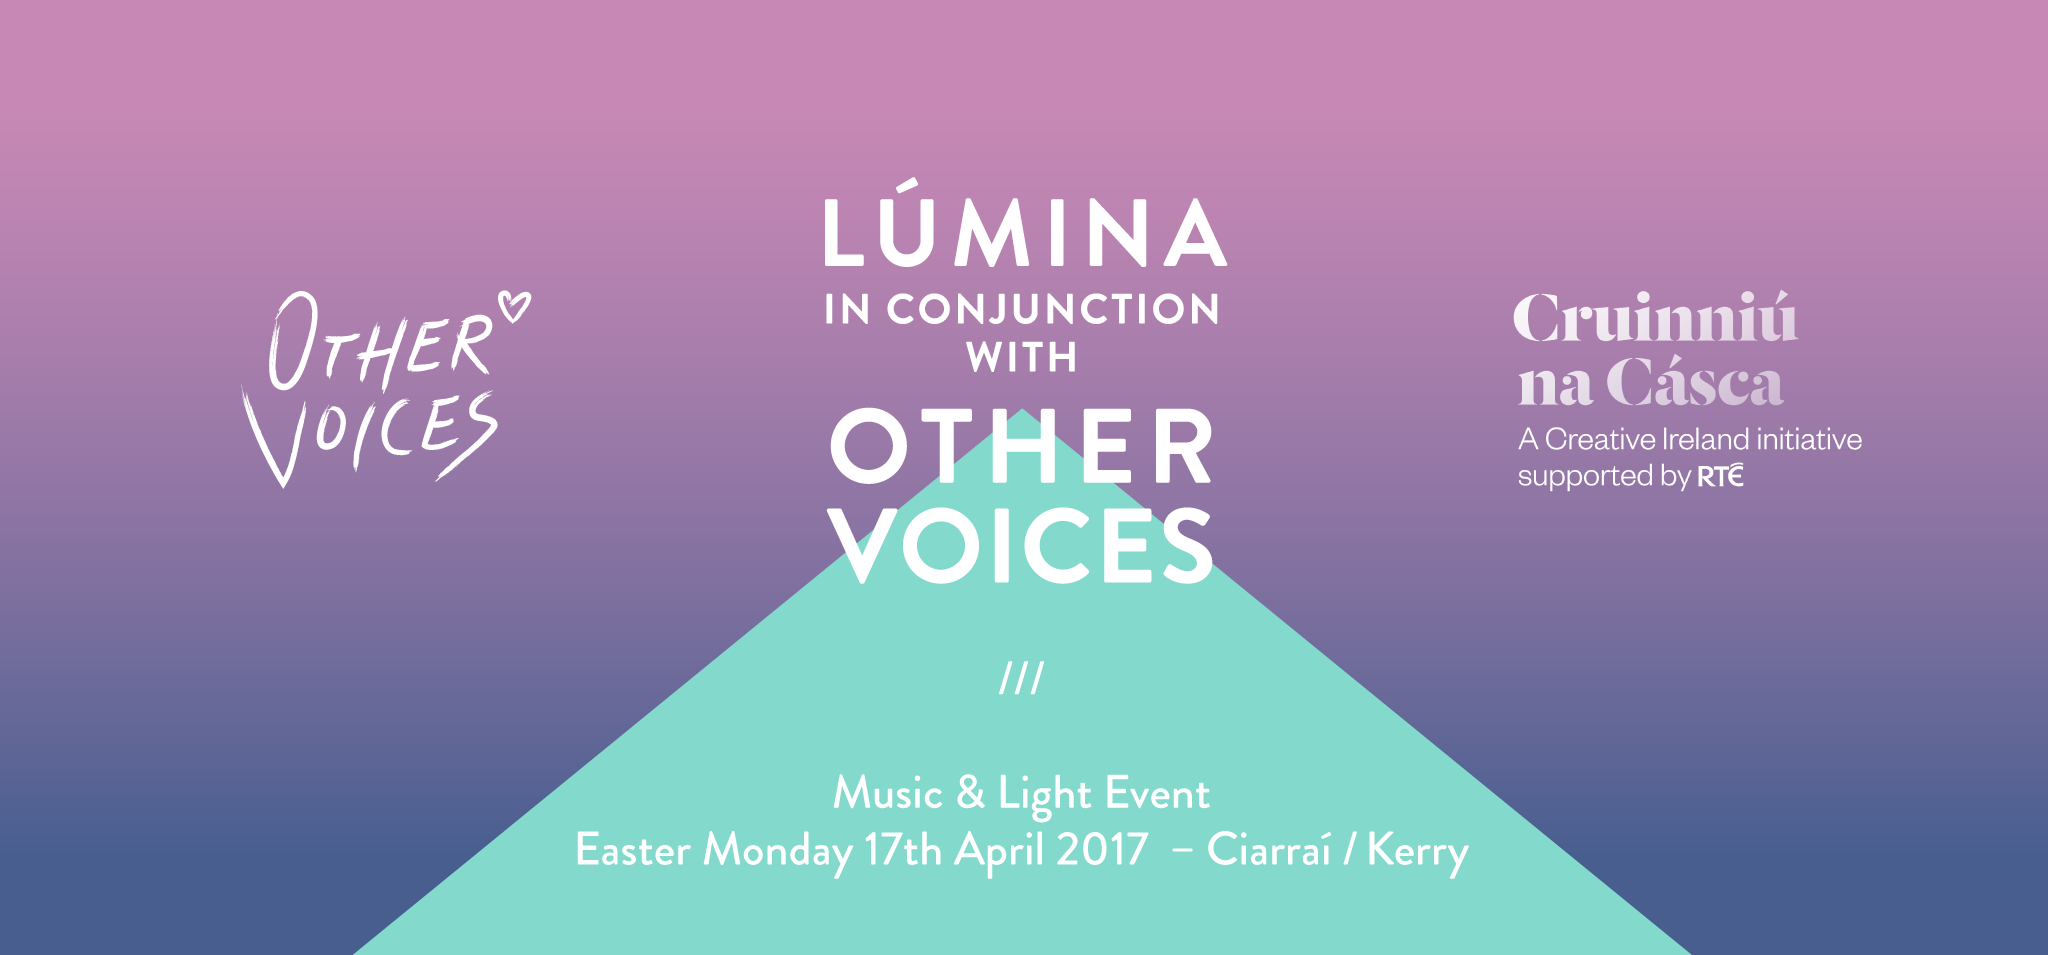 Lúmina in conjunction with Other Voices